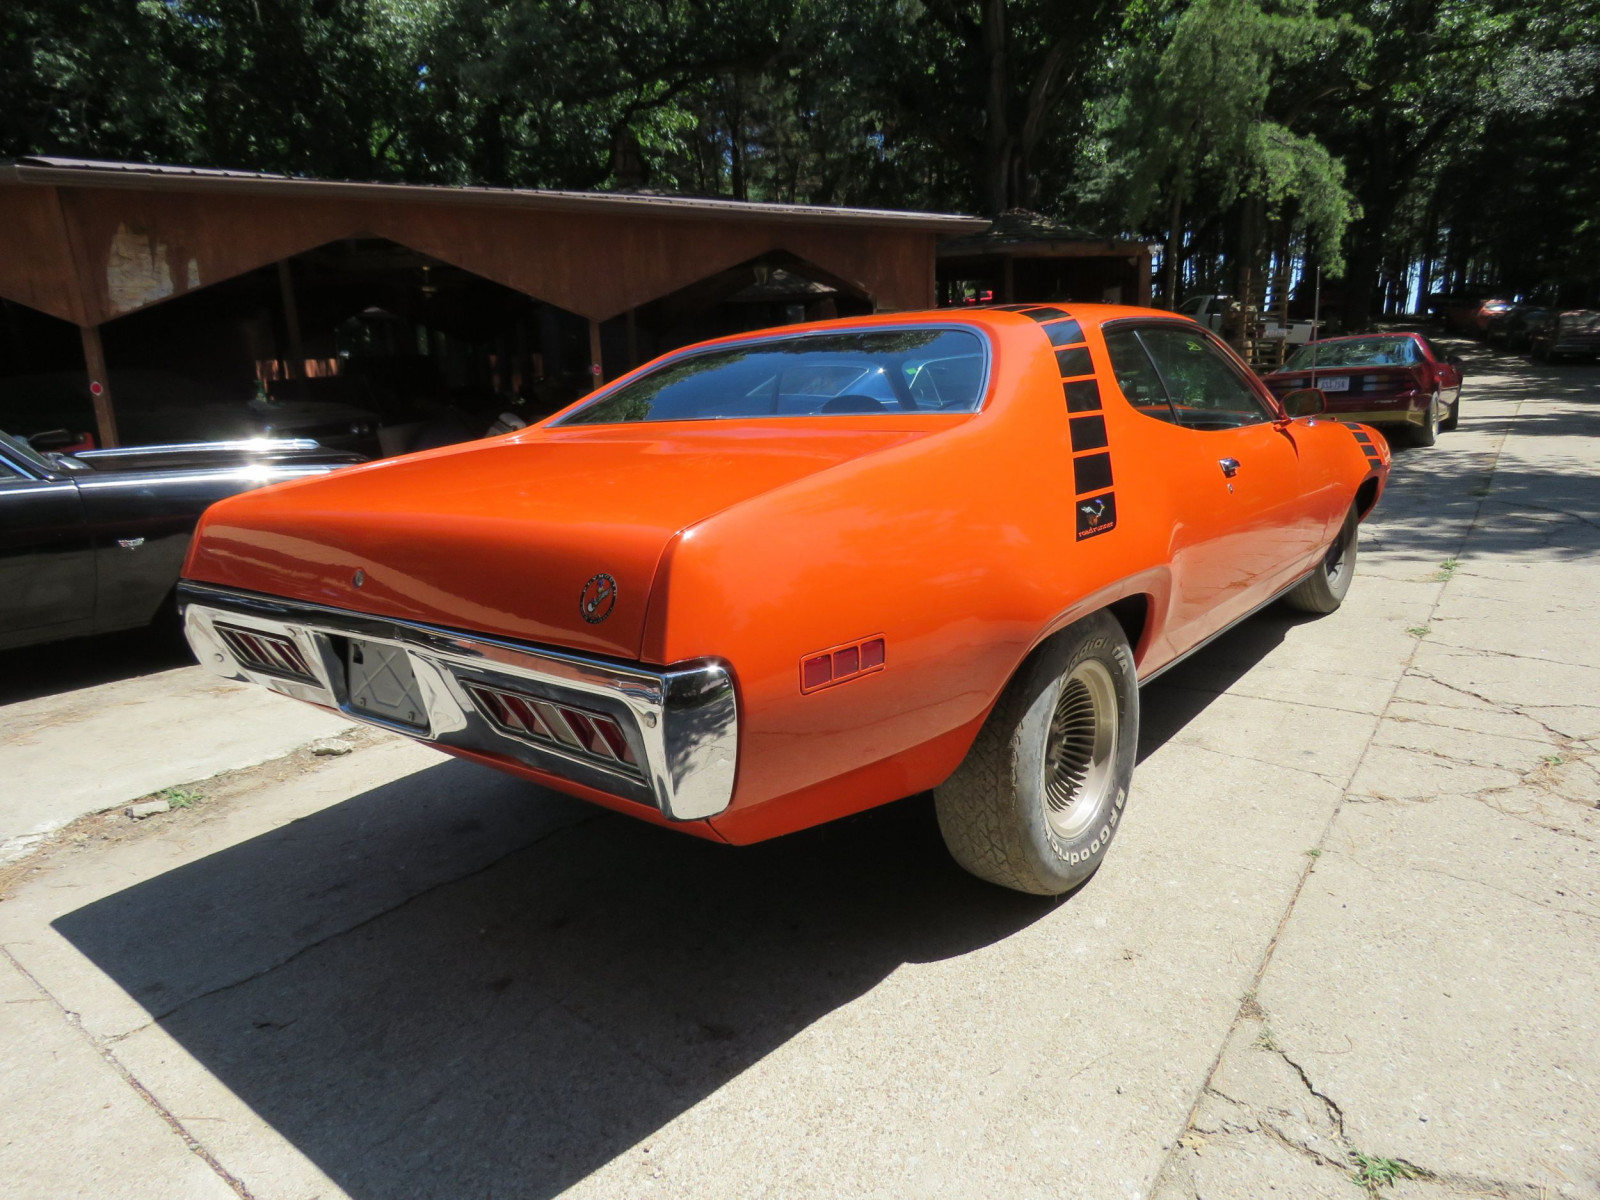 1971 Plymouth Satellite 2dr HT - Image 4